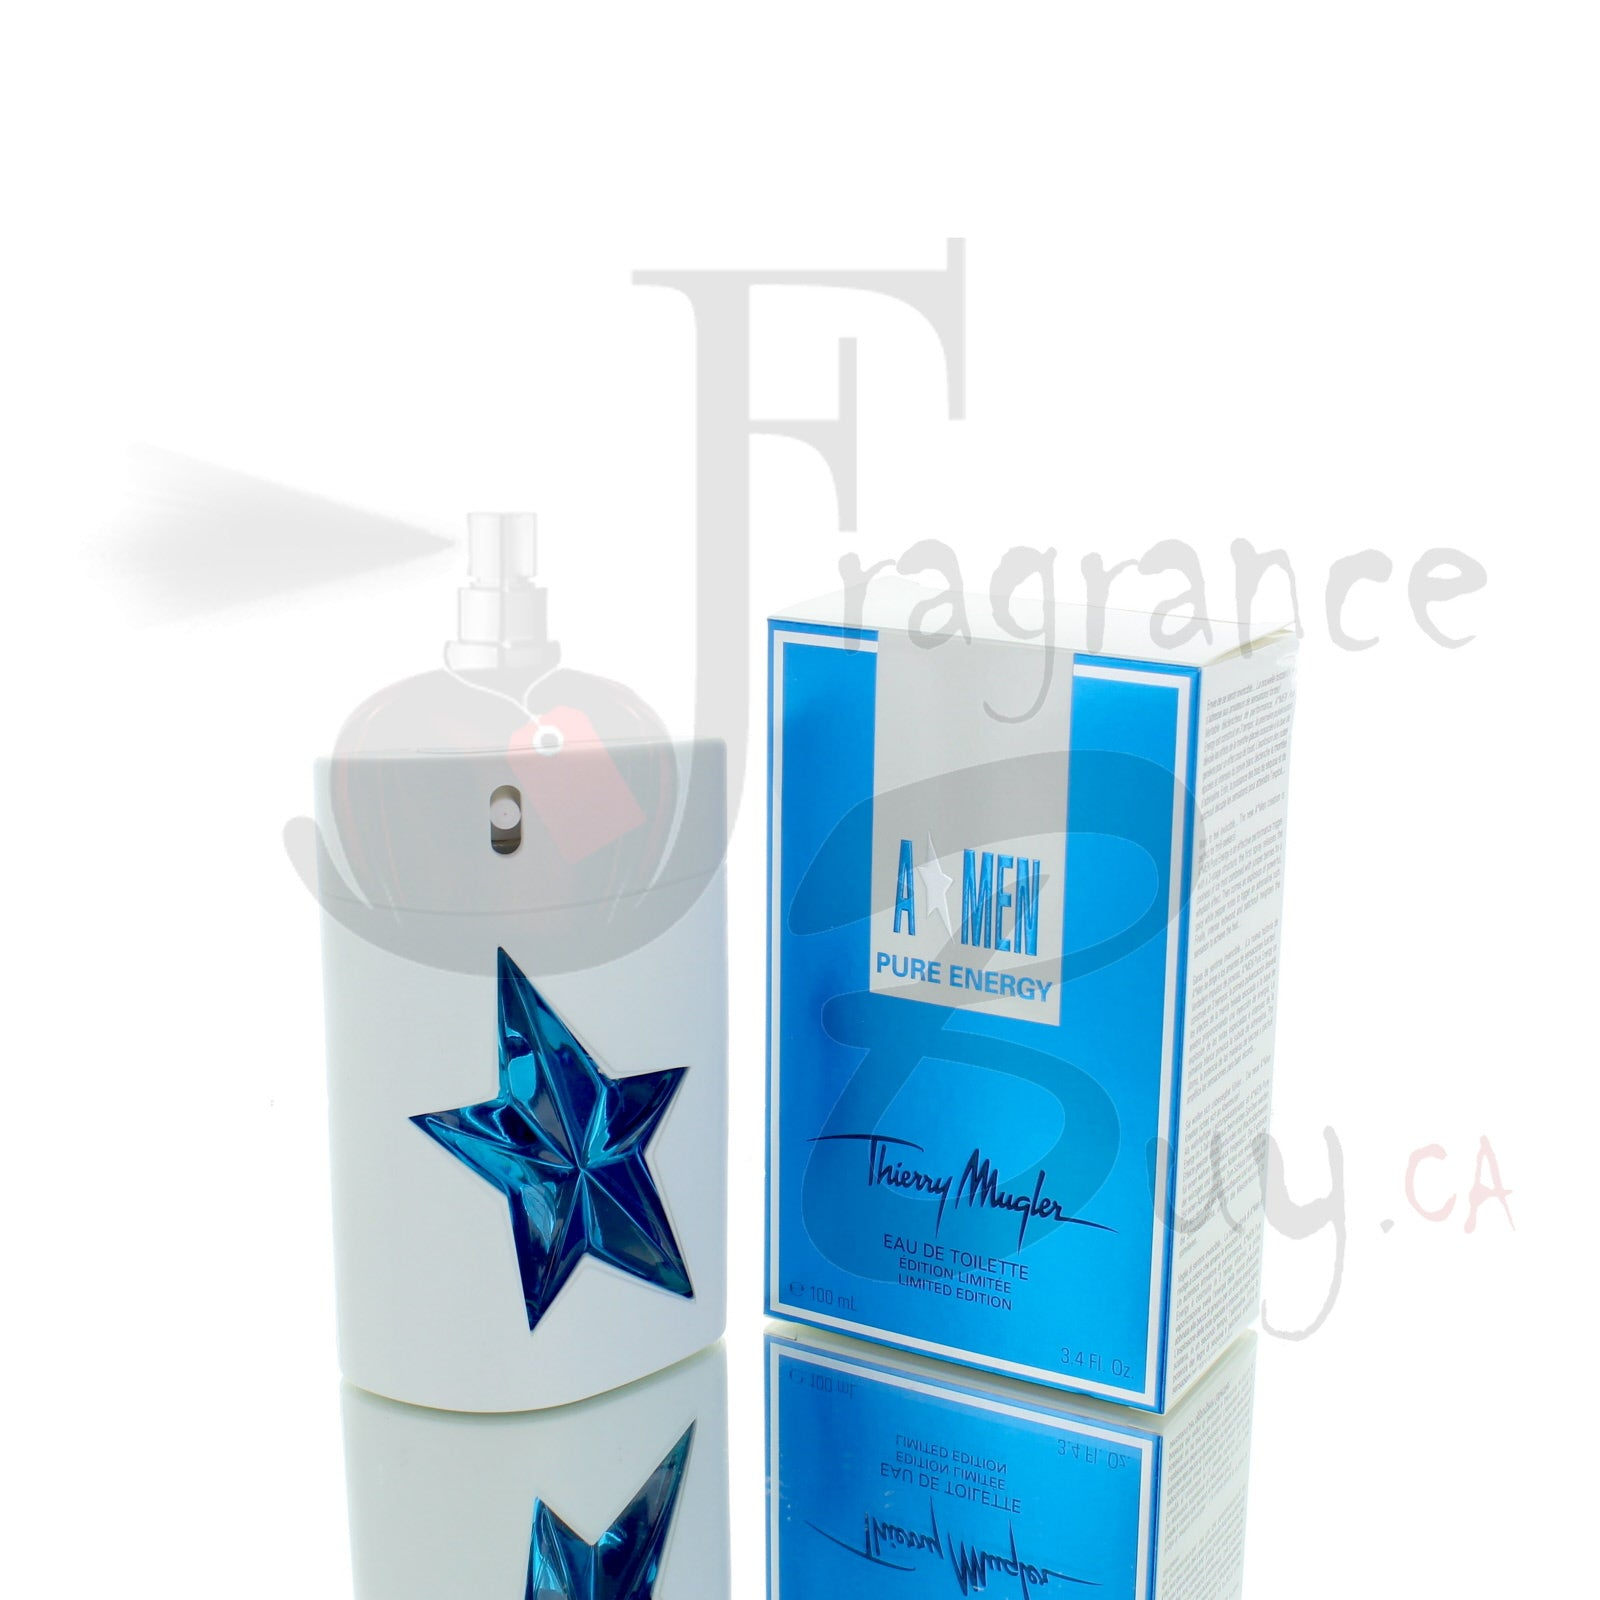 Angel A*Men Pure Energy by Thierry Mugler For Man